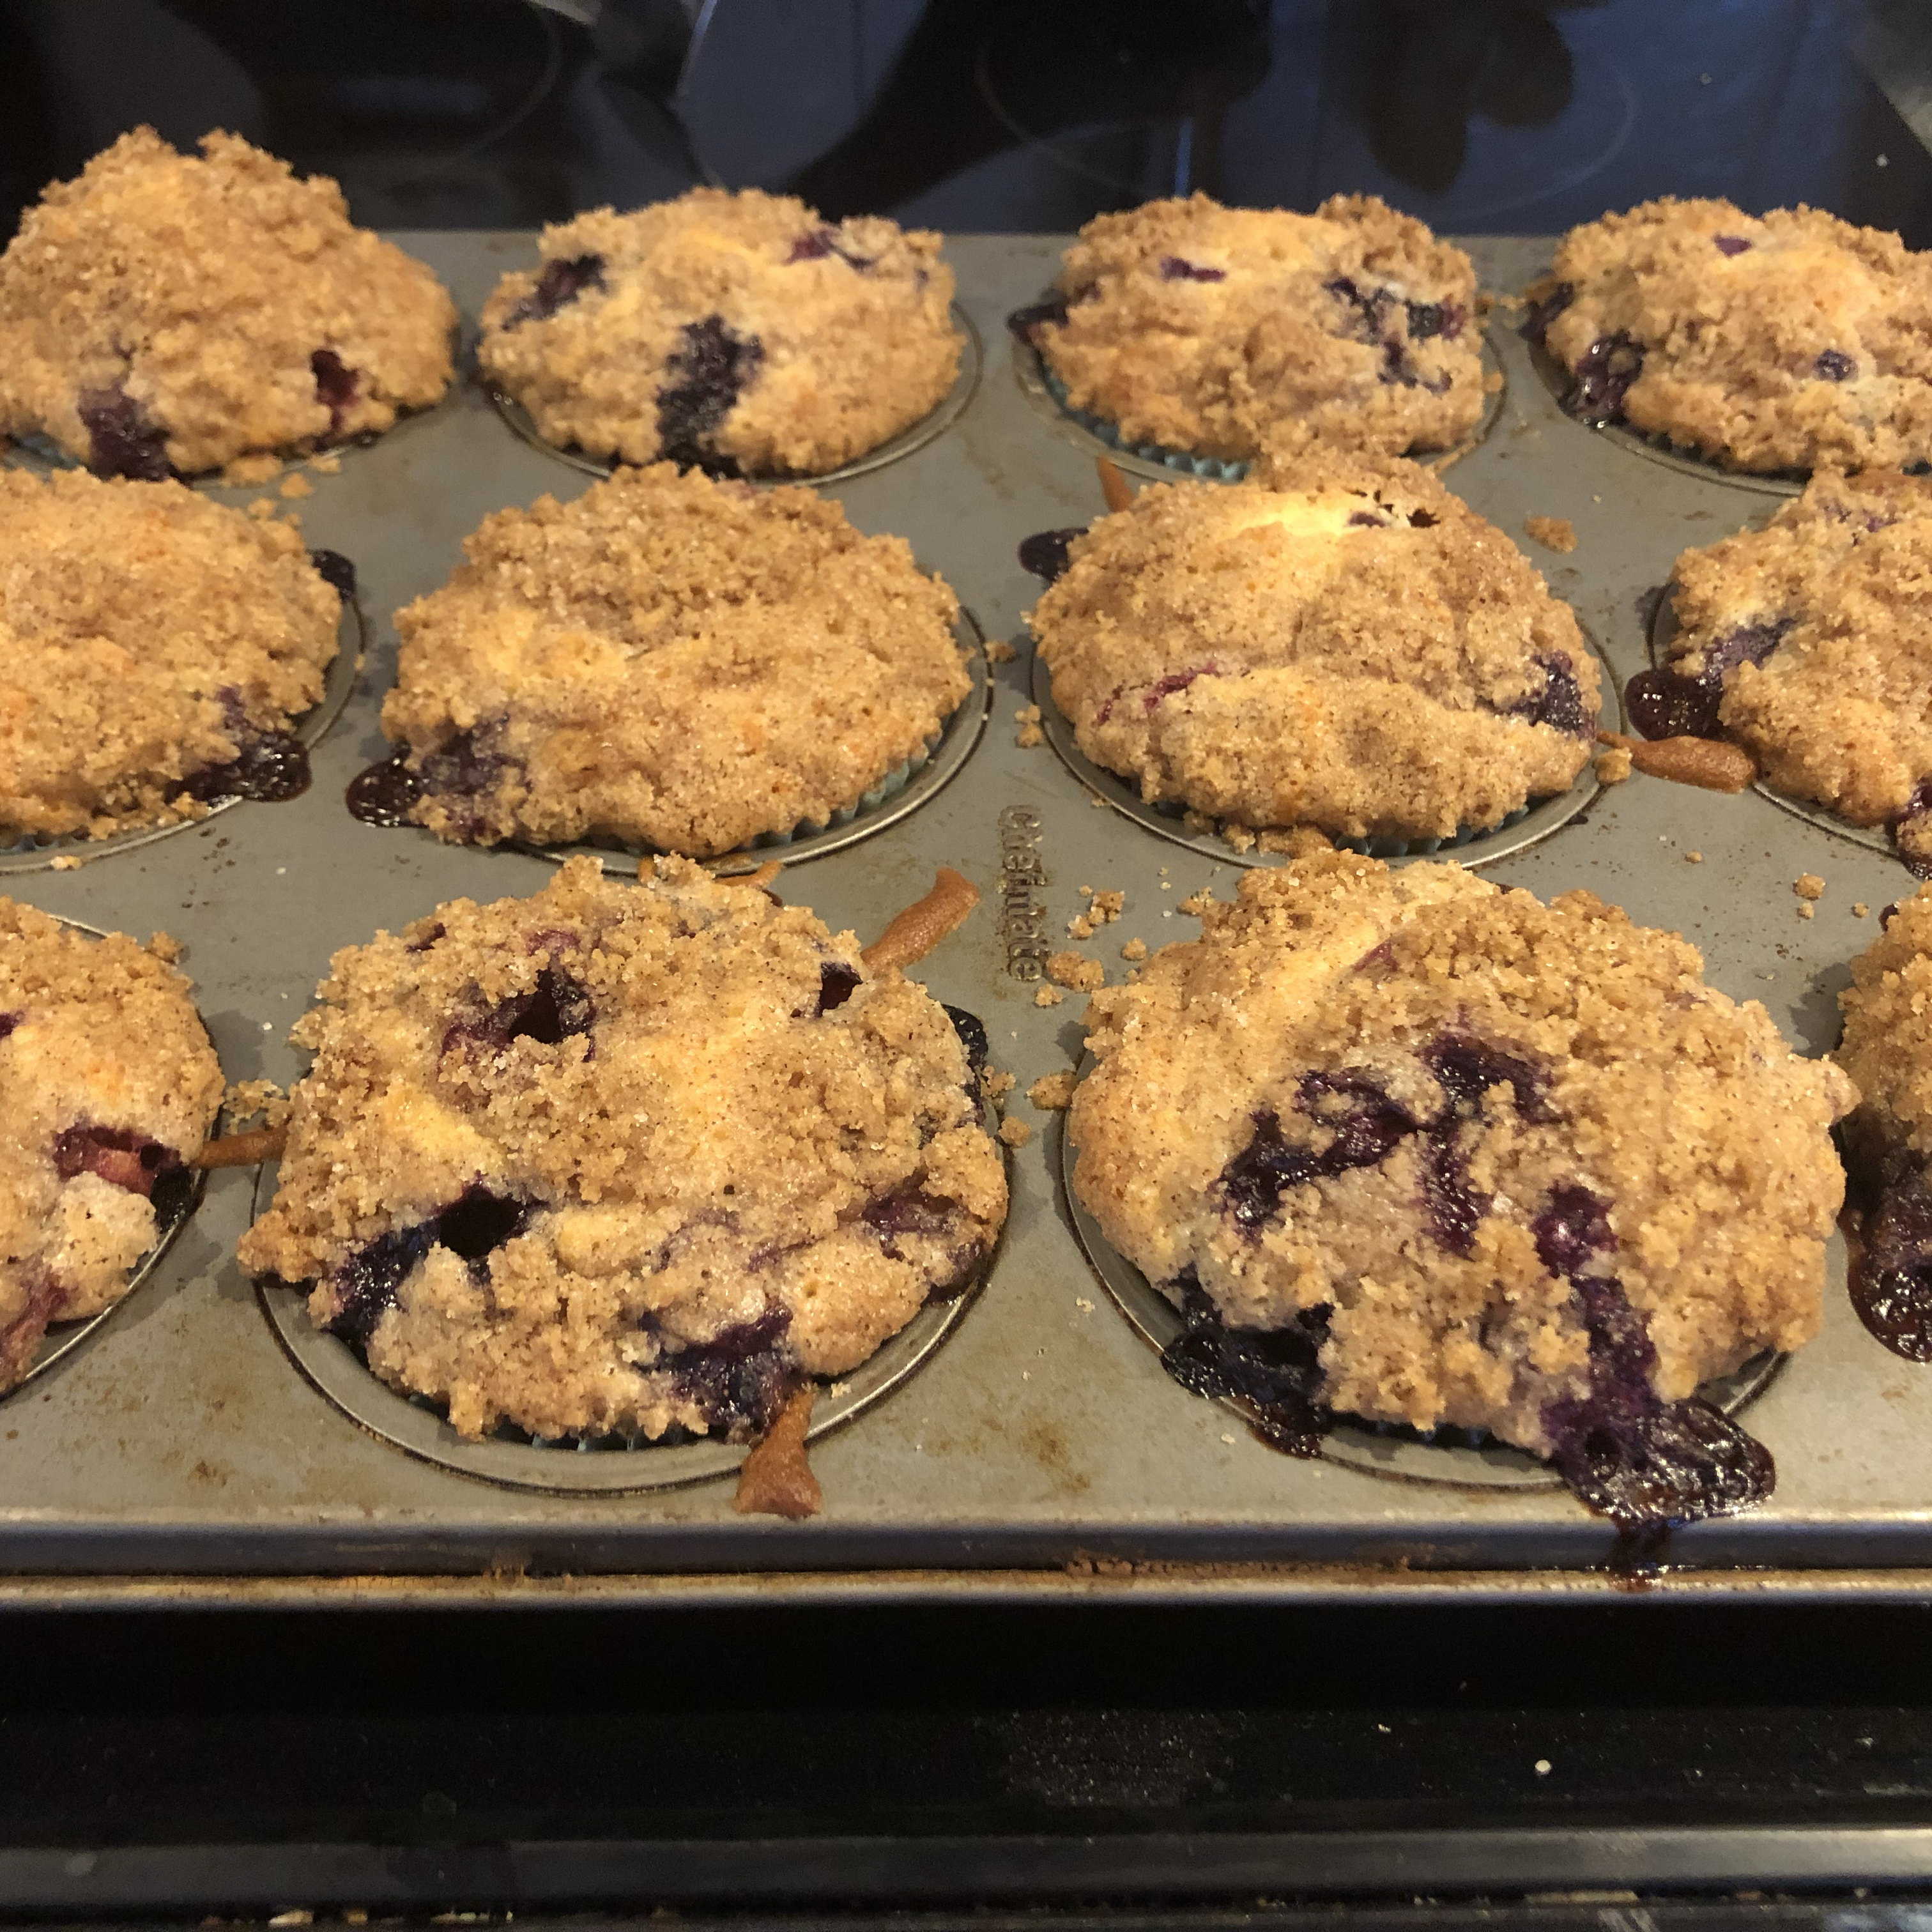 To Die For Blueberry Muffins crogers-rivera